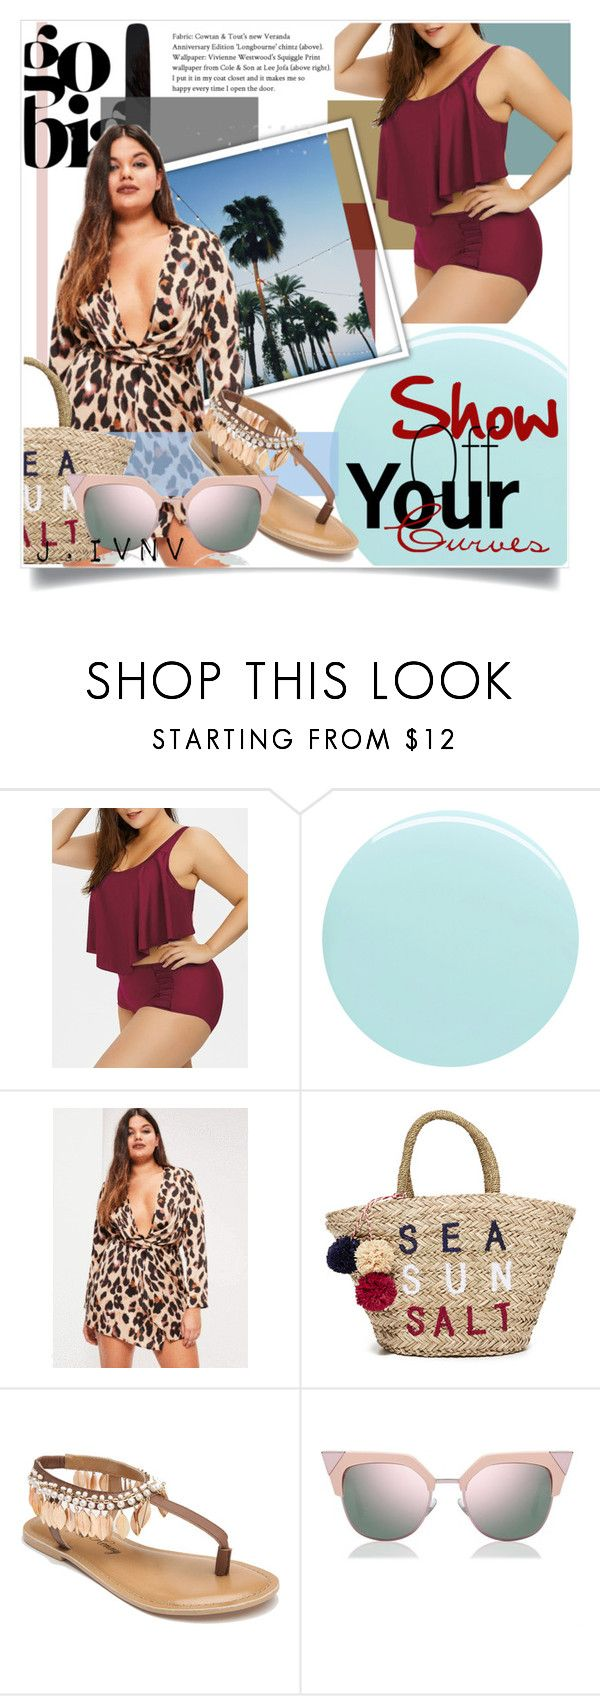 """Show off Your Curves: Bikini"" by j-ivnv ❤ liked on Polyvore featuring JINsoon, Sundry, Penny Loves Kenny, Fendi, Summer, bikini and plussize"